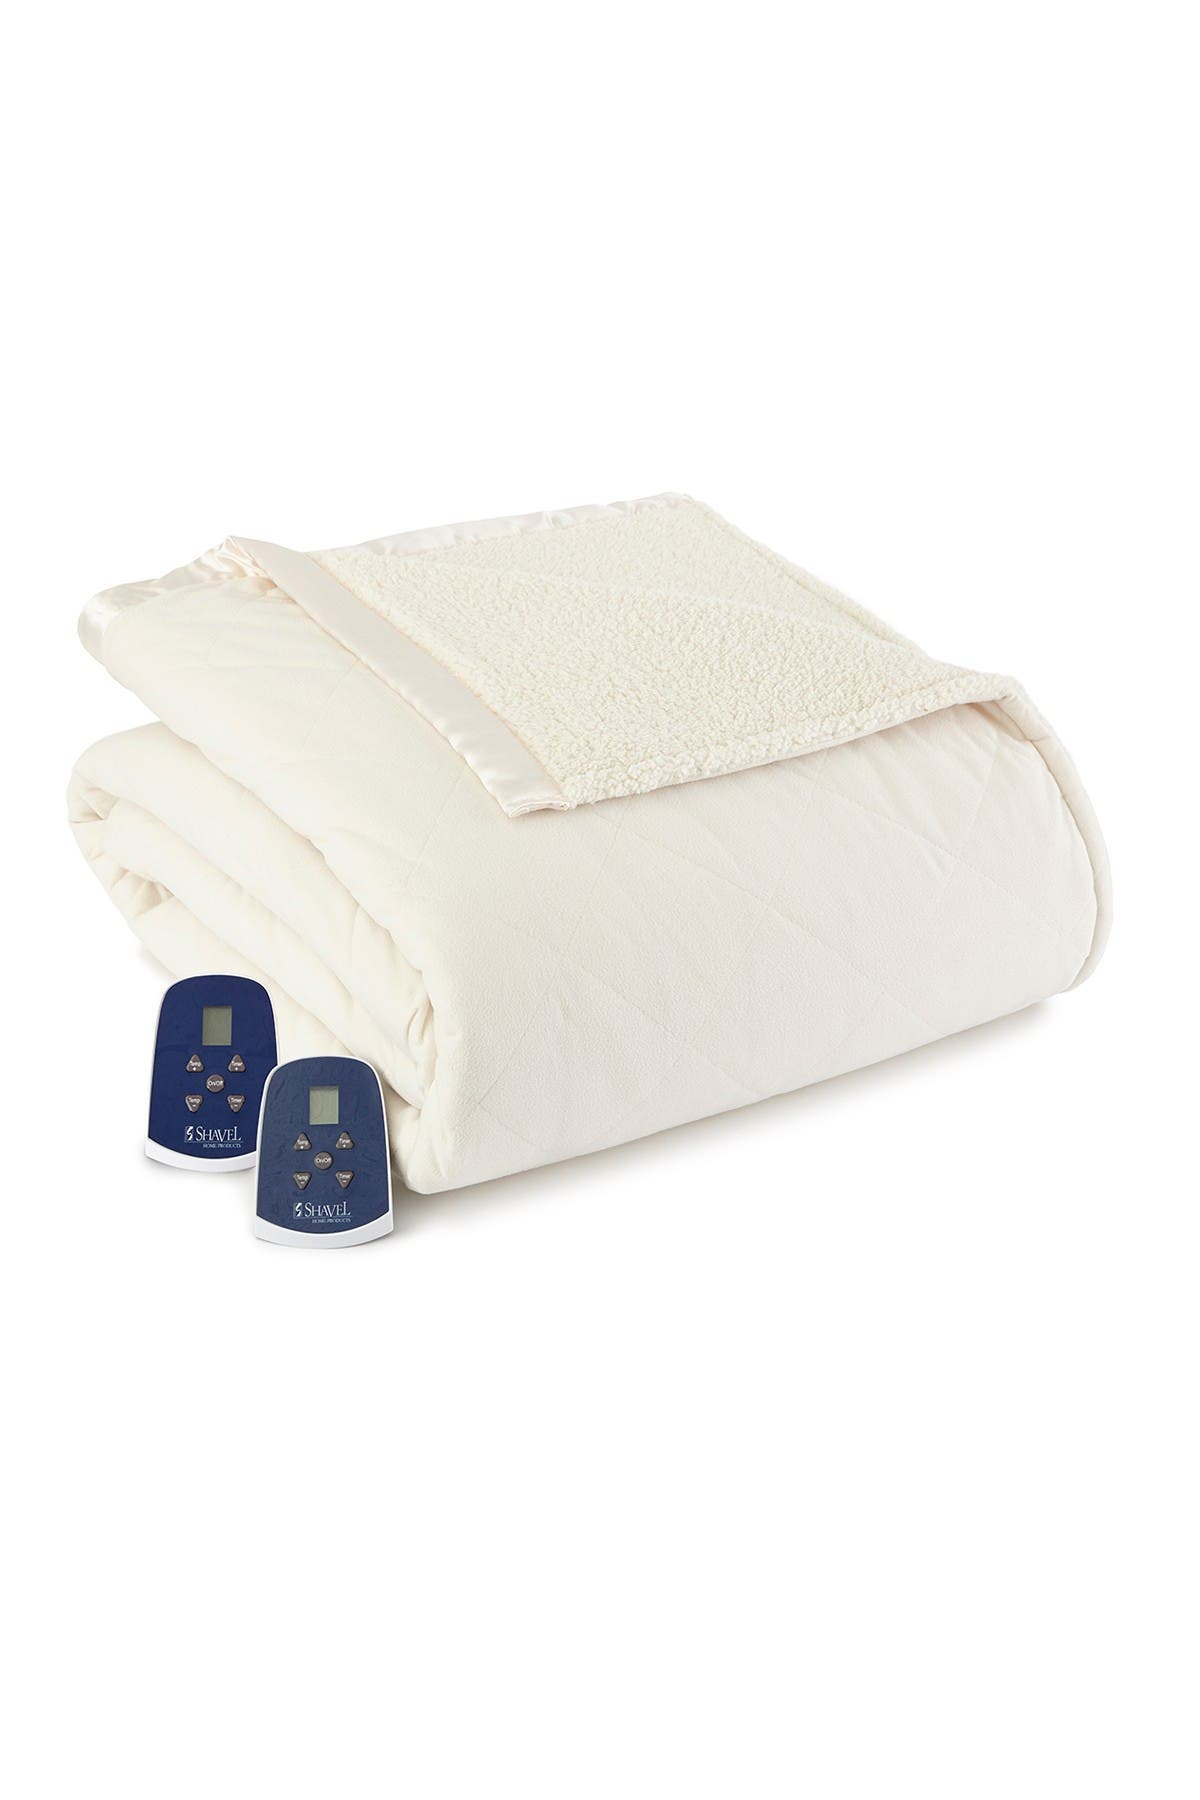 Image of Shavel Micro Flannel Reverse to Faux Shearling Electric Heated King Blanket - Ivory